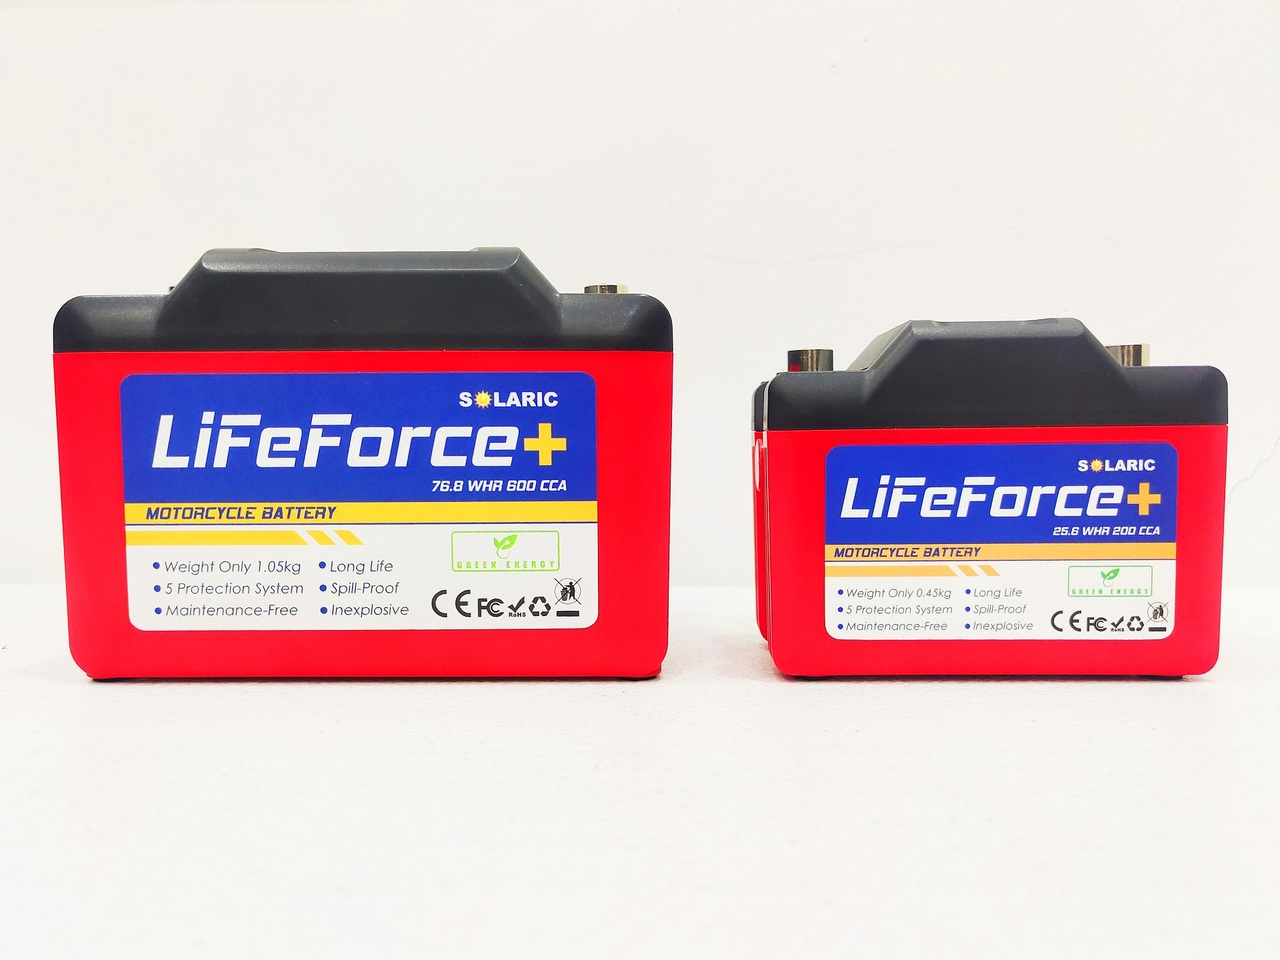 GEAR-UP THIS 2021 WITH LiFeFORCE+!